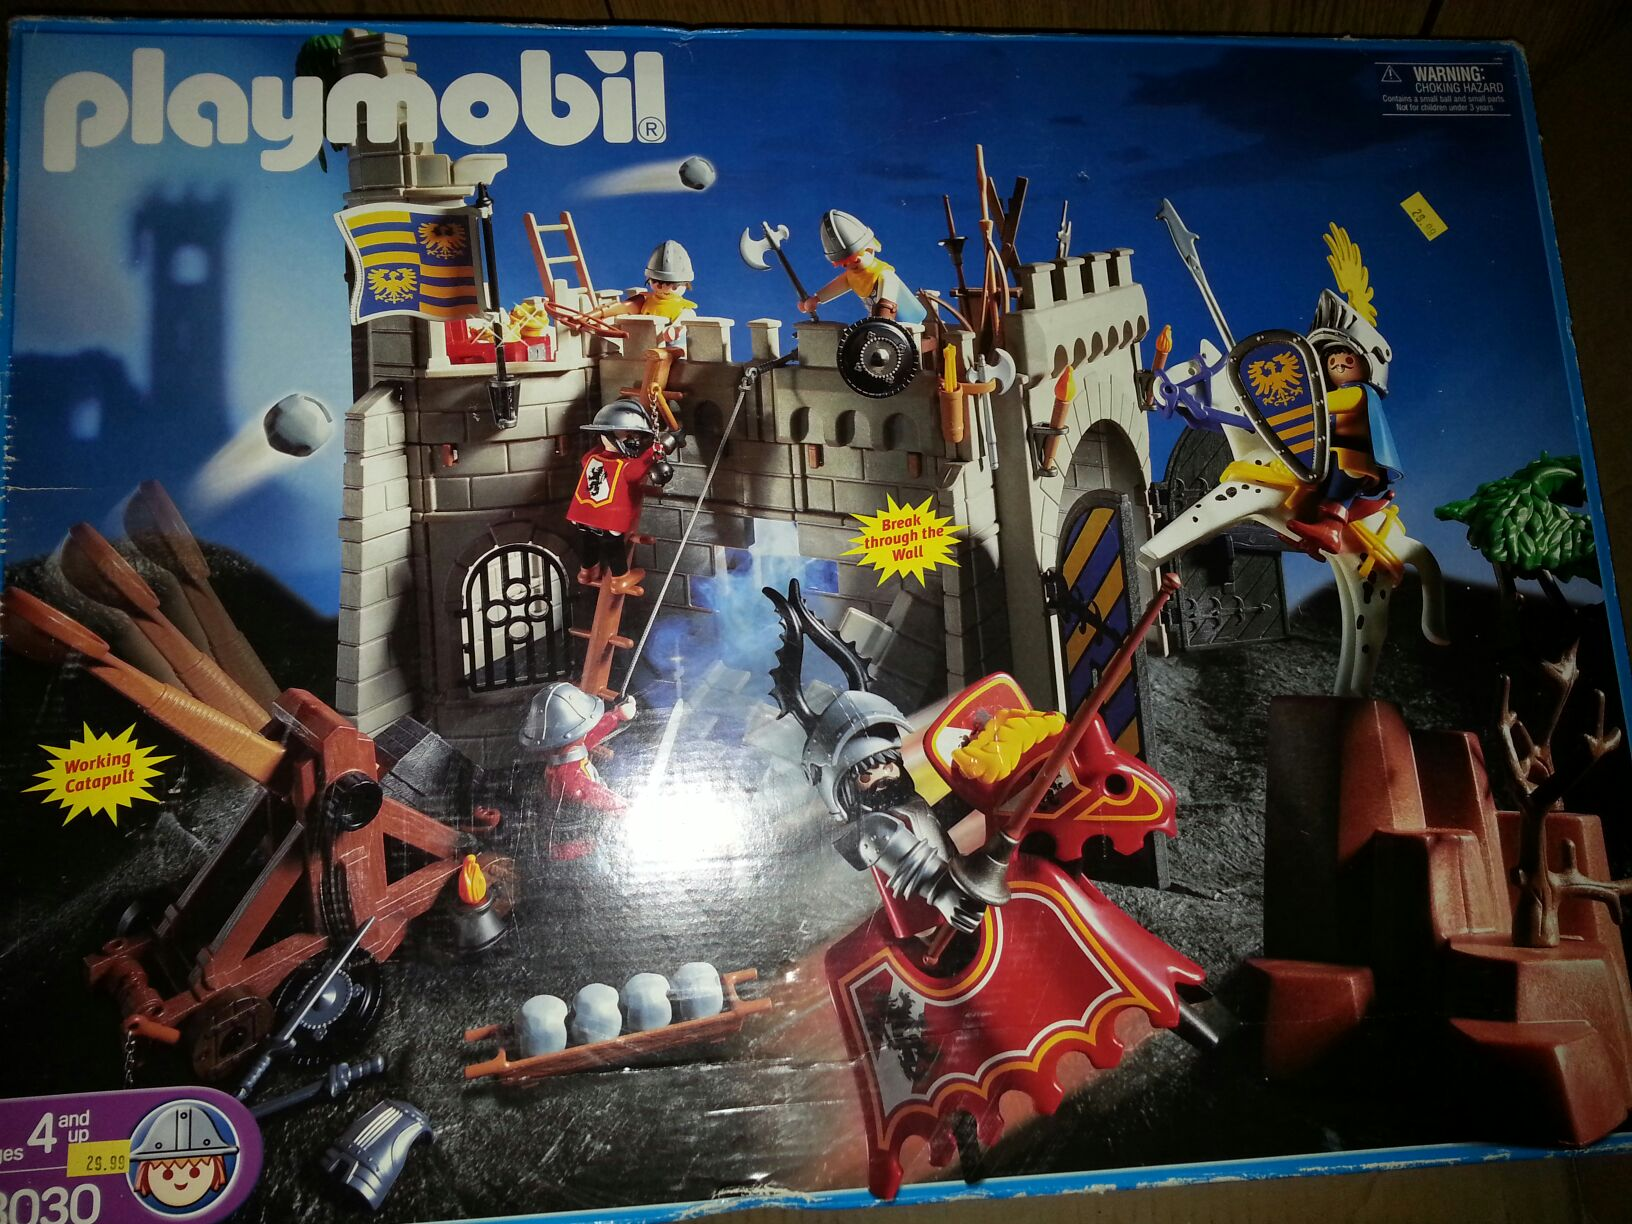 Knights 3030 Playmobil - Adventure (3030) front image (front cover)